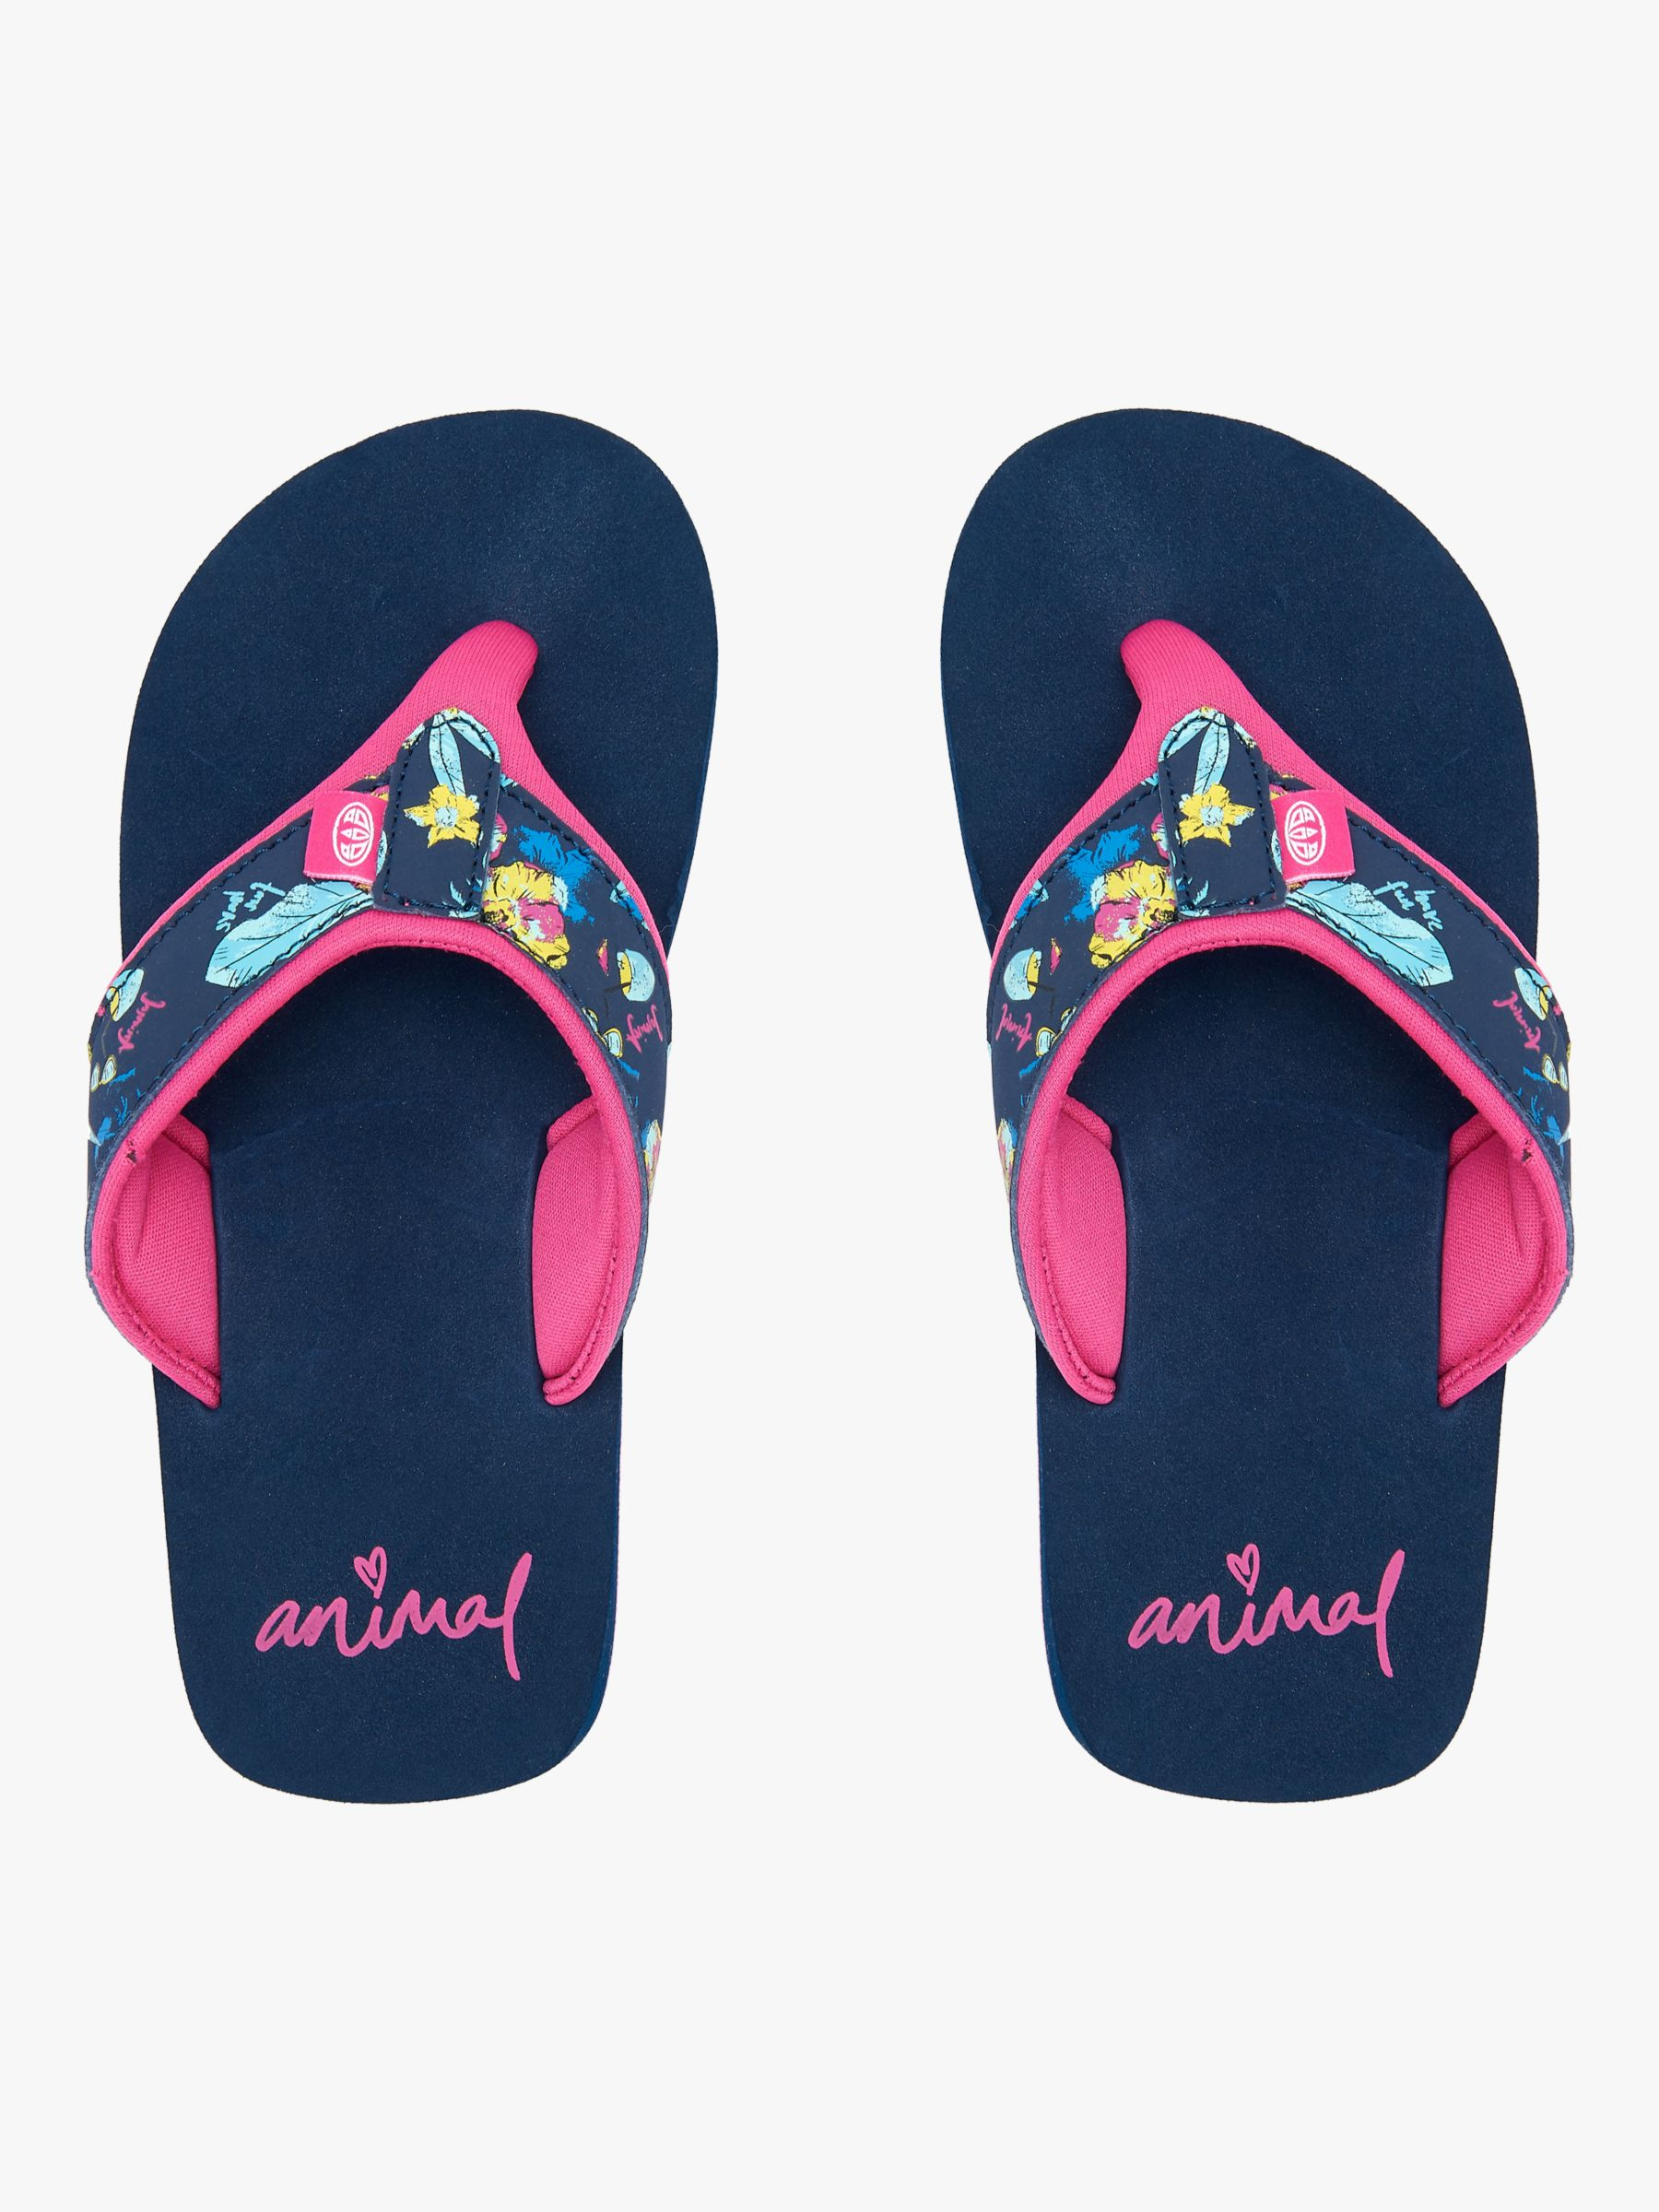 Animal Animal Children's Swish Upper AOP Flip Flops, Indigo Blue